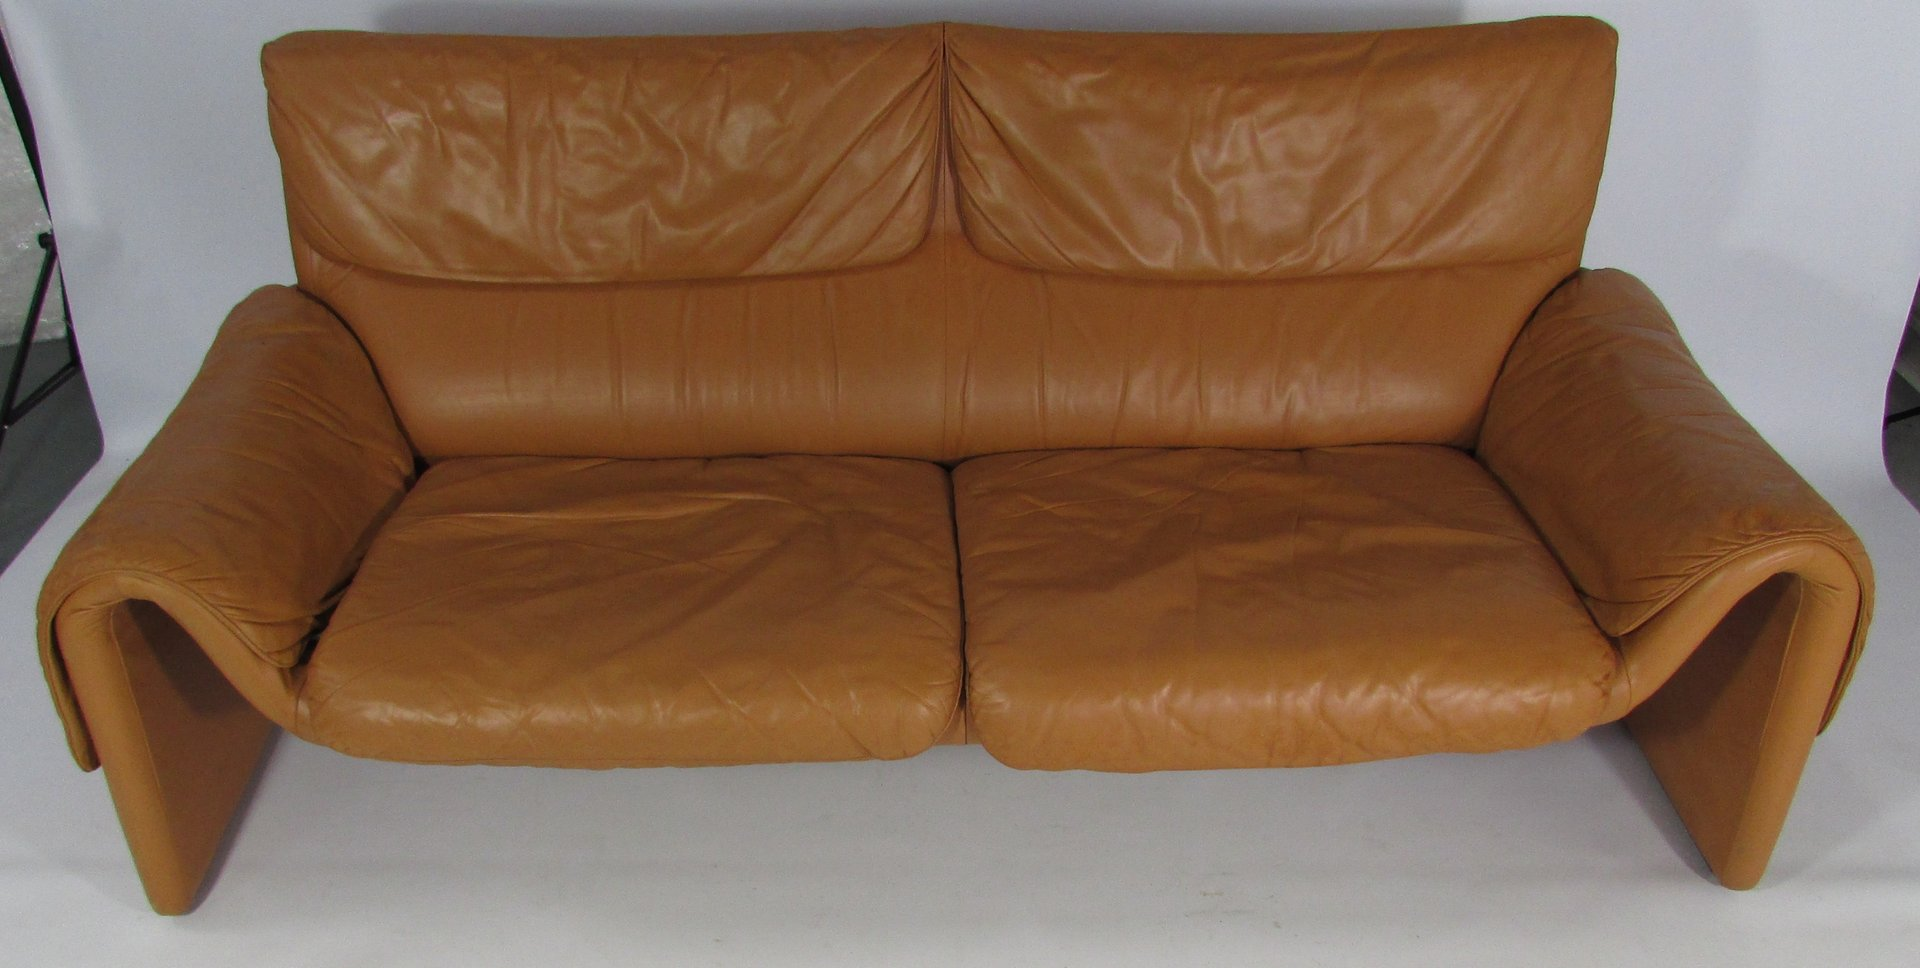 tan leather sofa bed australia white set india model ds 2011 from de sede for sale at pamono